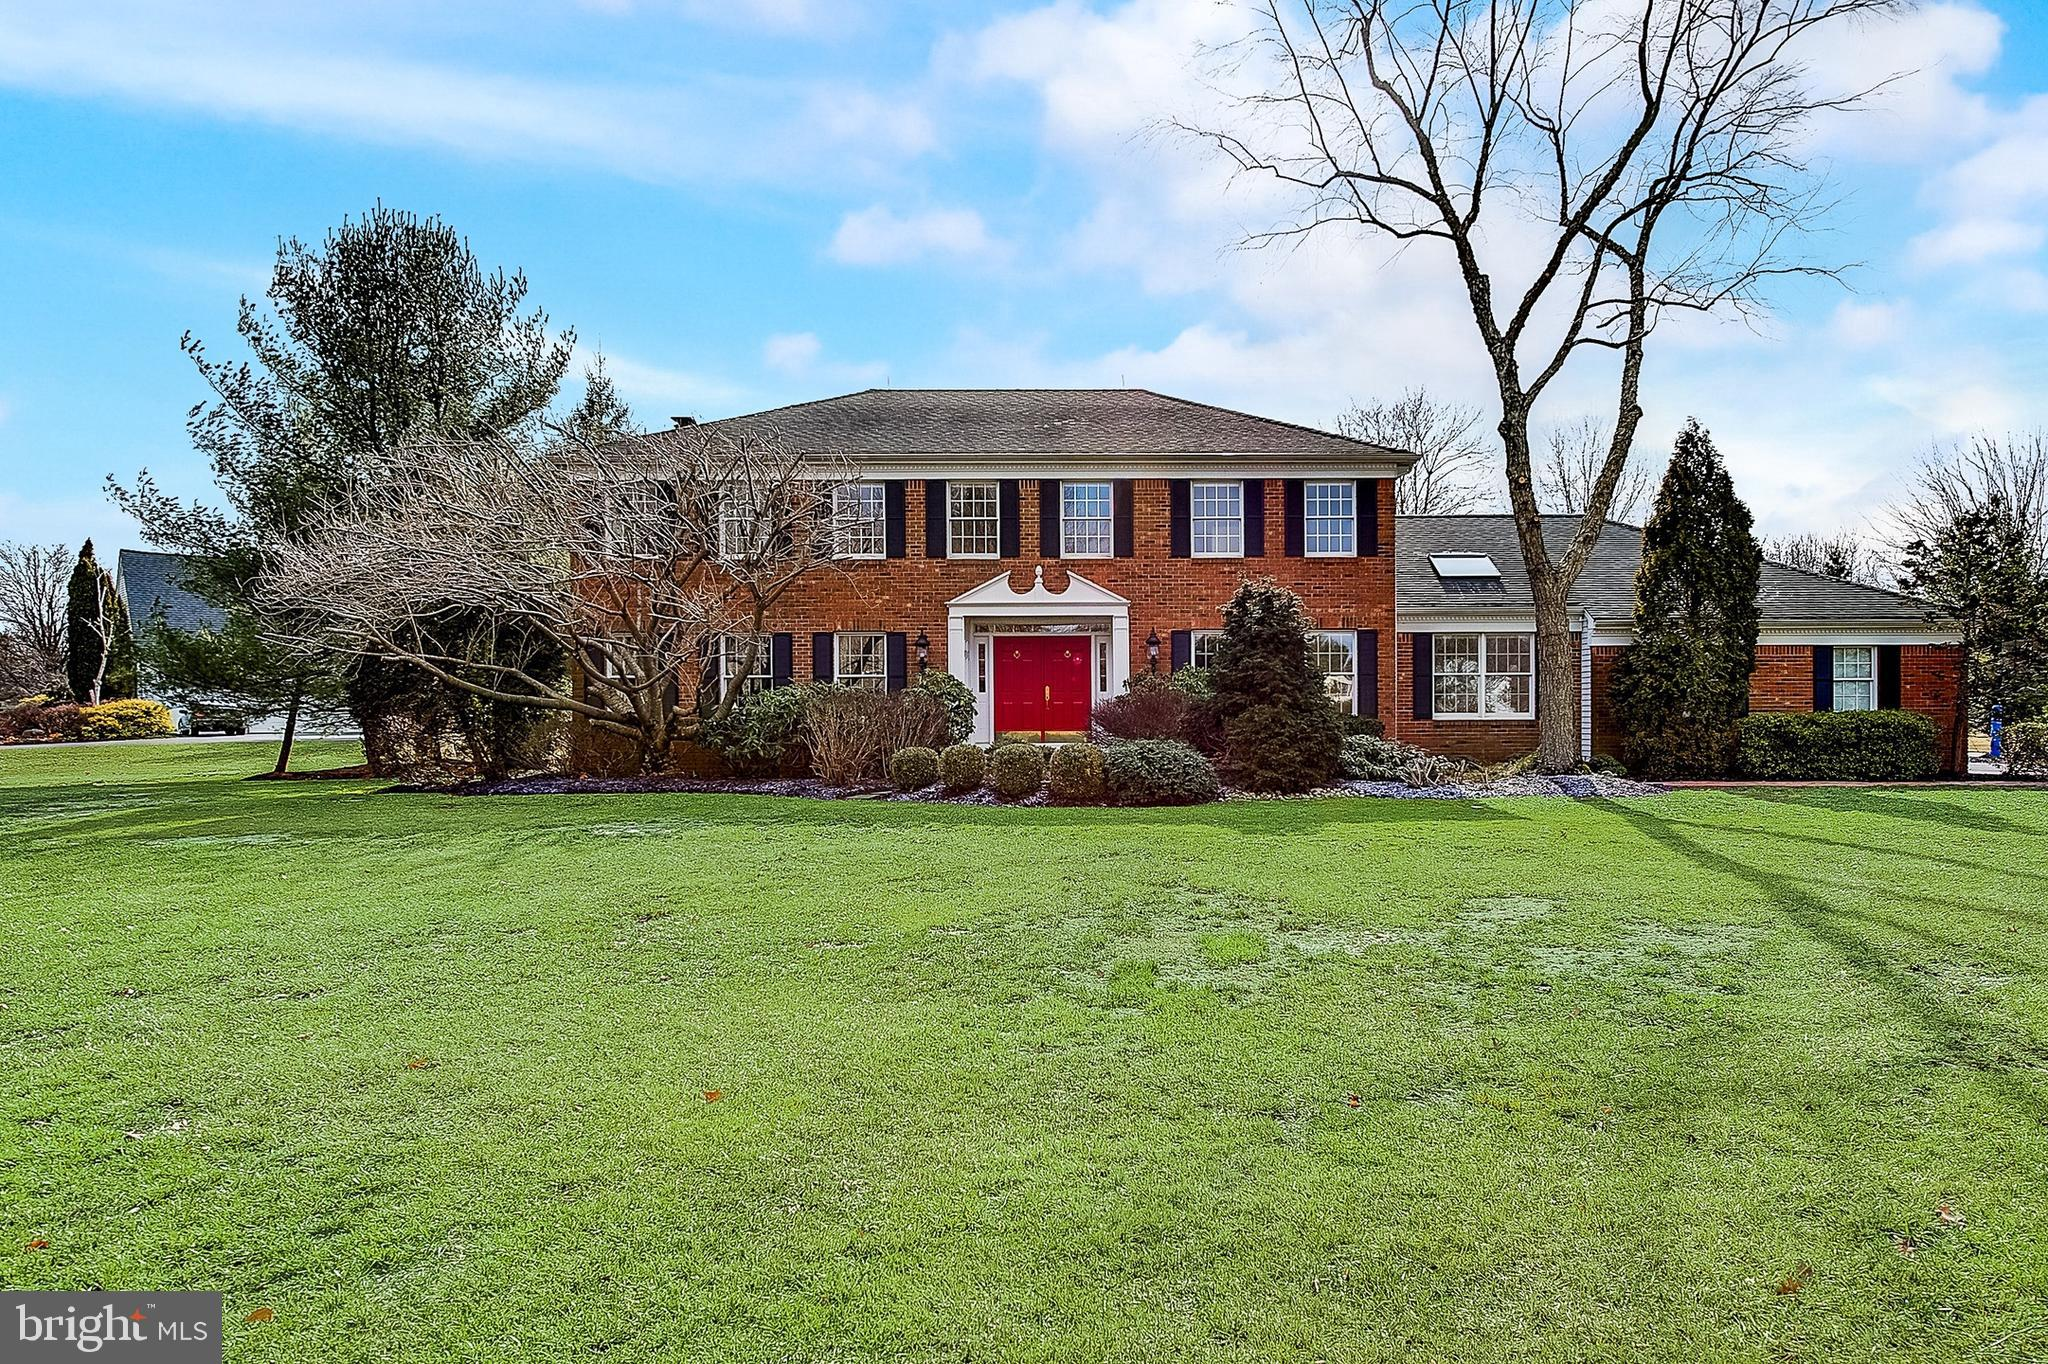 12 EVANS DRIVE, PRINCETON JUNCTION, NJ 08550